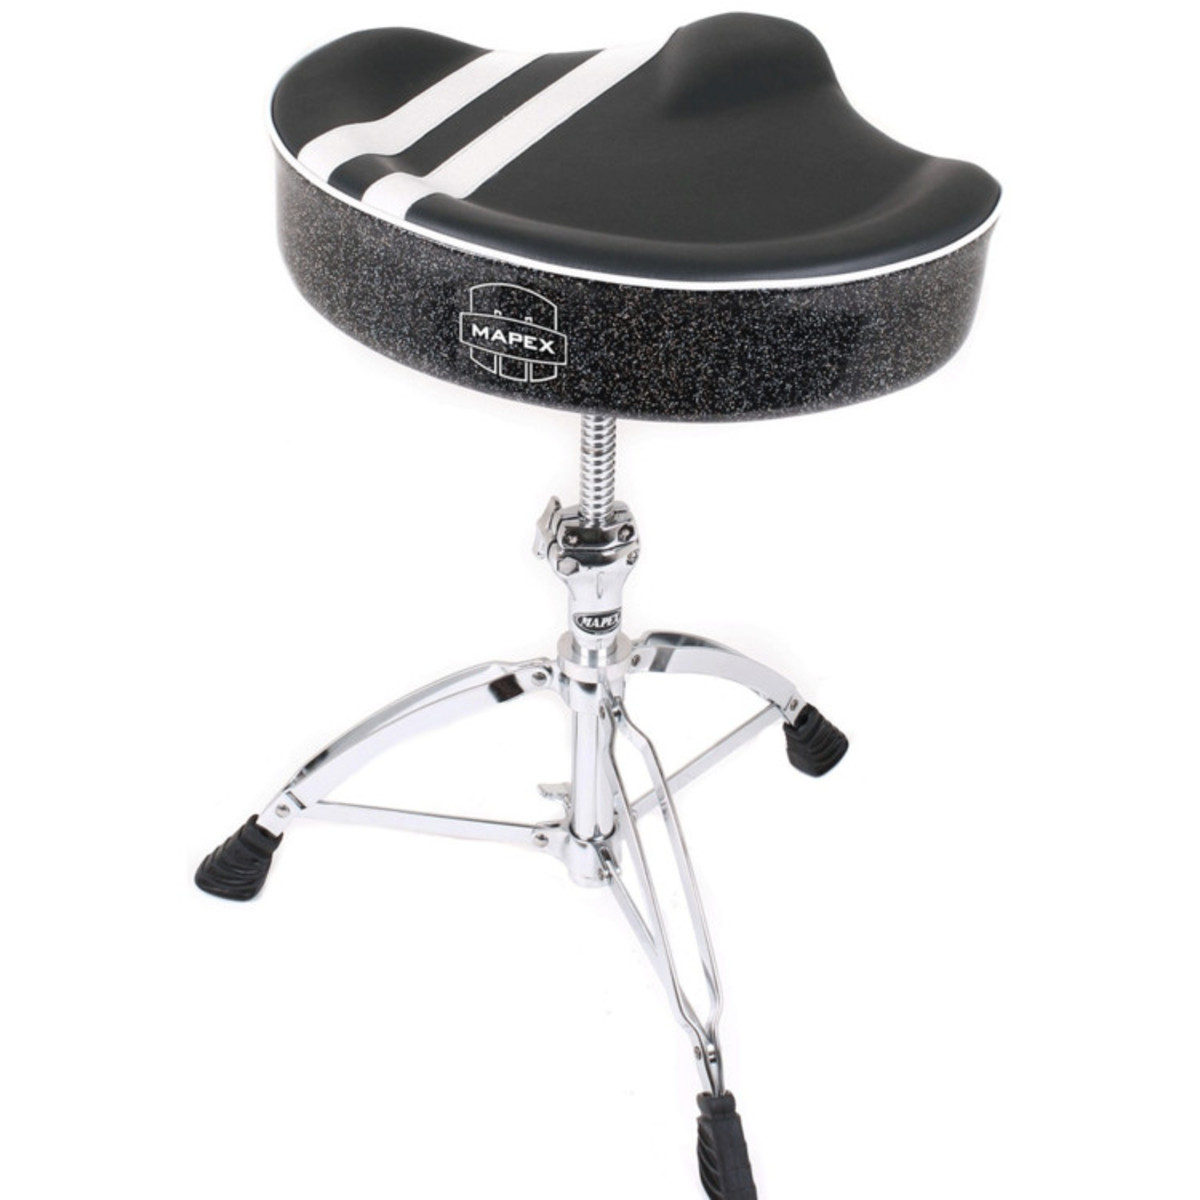 Image of Mapex T756B Stool Saddle Top Threaded Base Black with White Stripe